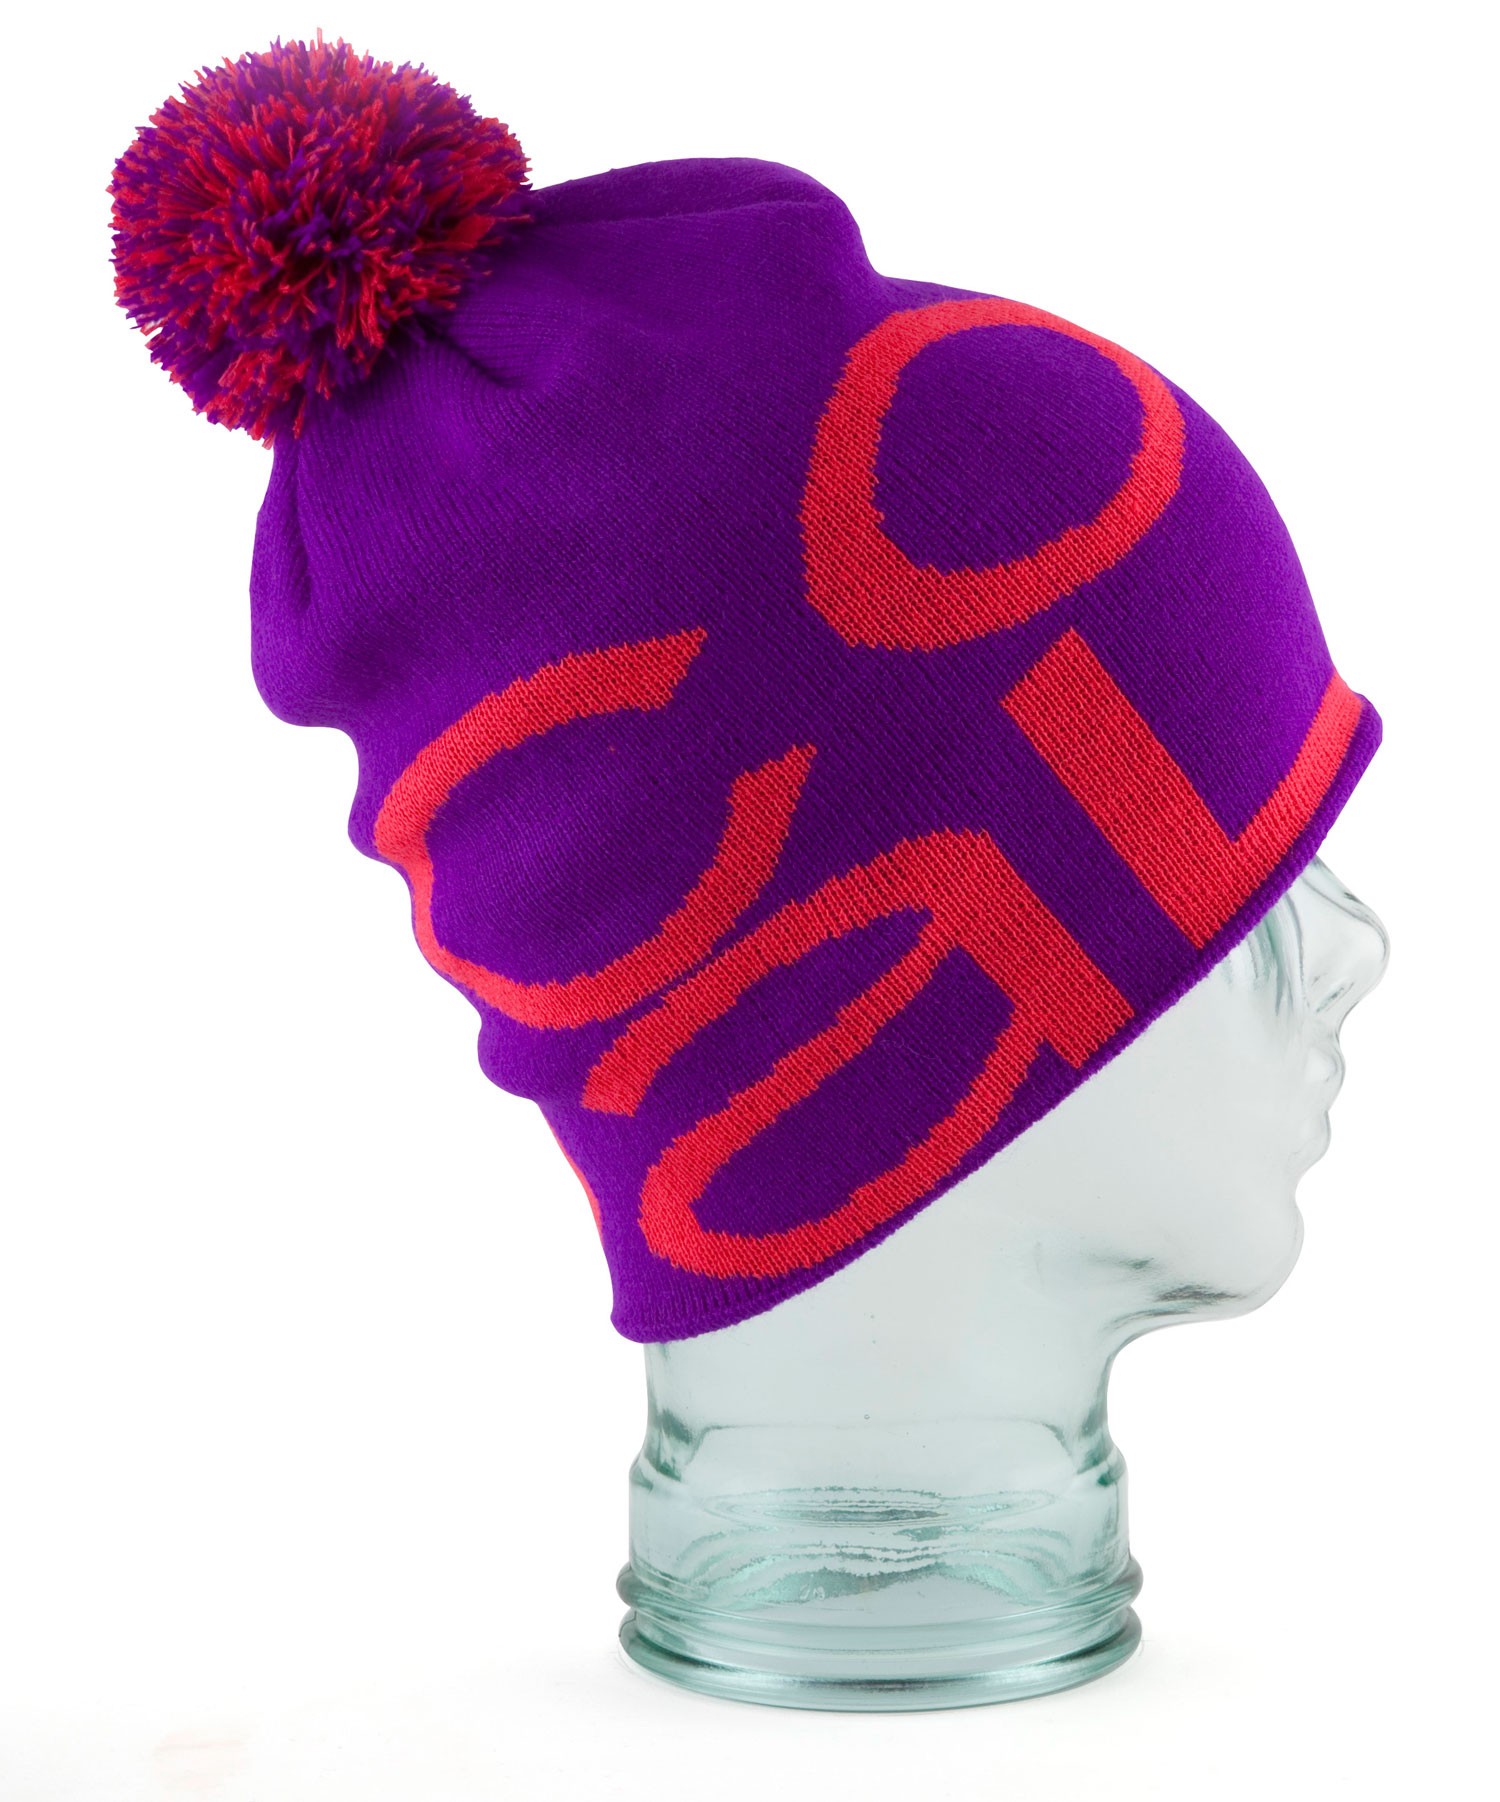 A modern oversized beanie with all-over jacquard branding and multi-colored pom pom. Fine acrylic. - $20.00